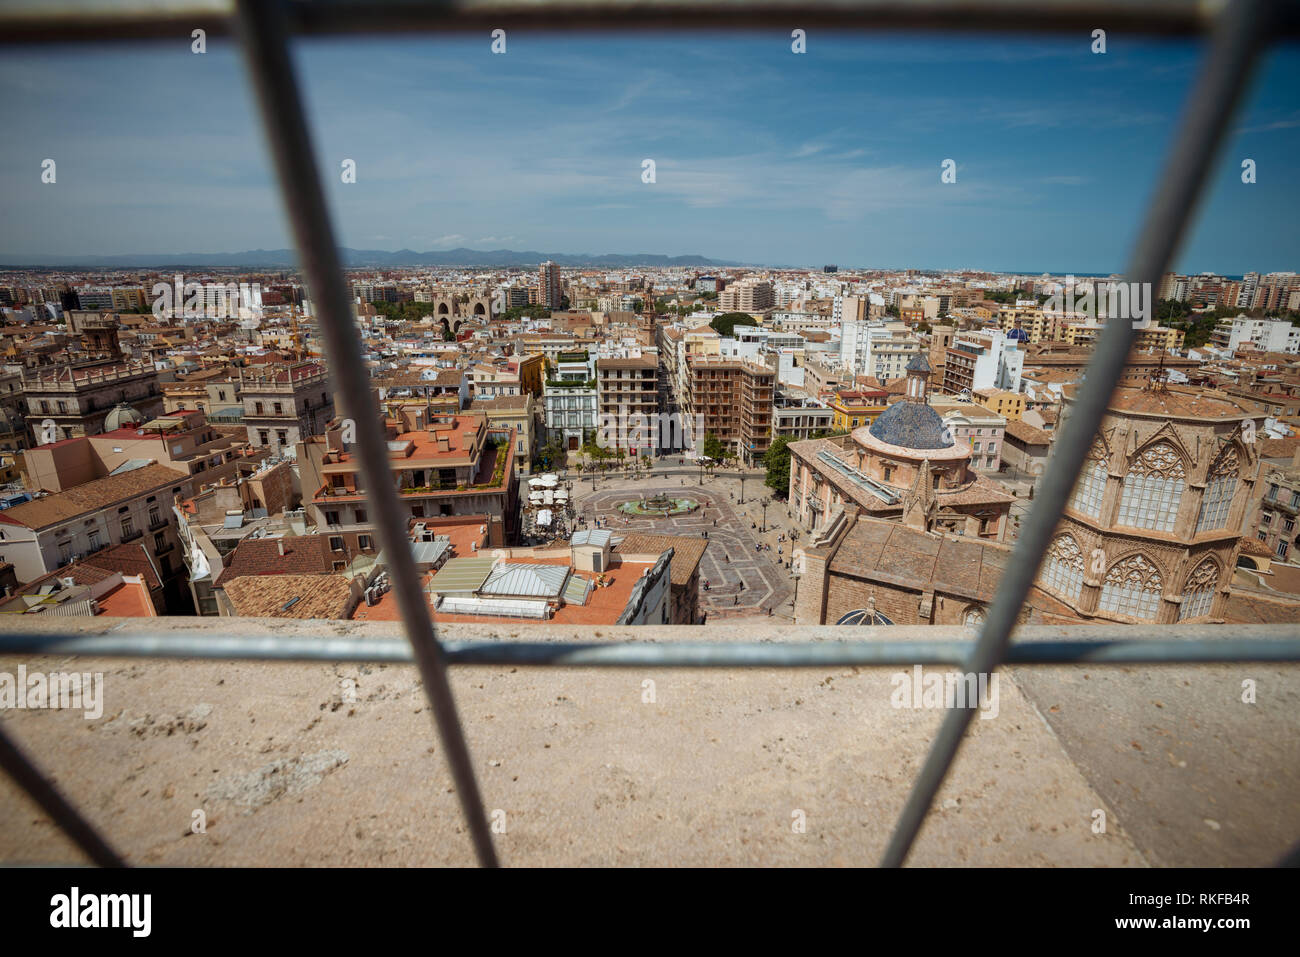 The view of the city from the top of the El Miguelete, the bell tower of the Valencia Cathedral in Valencia, Spain. Stock Photo